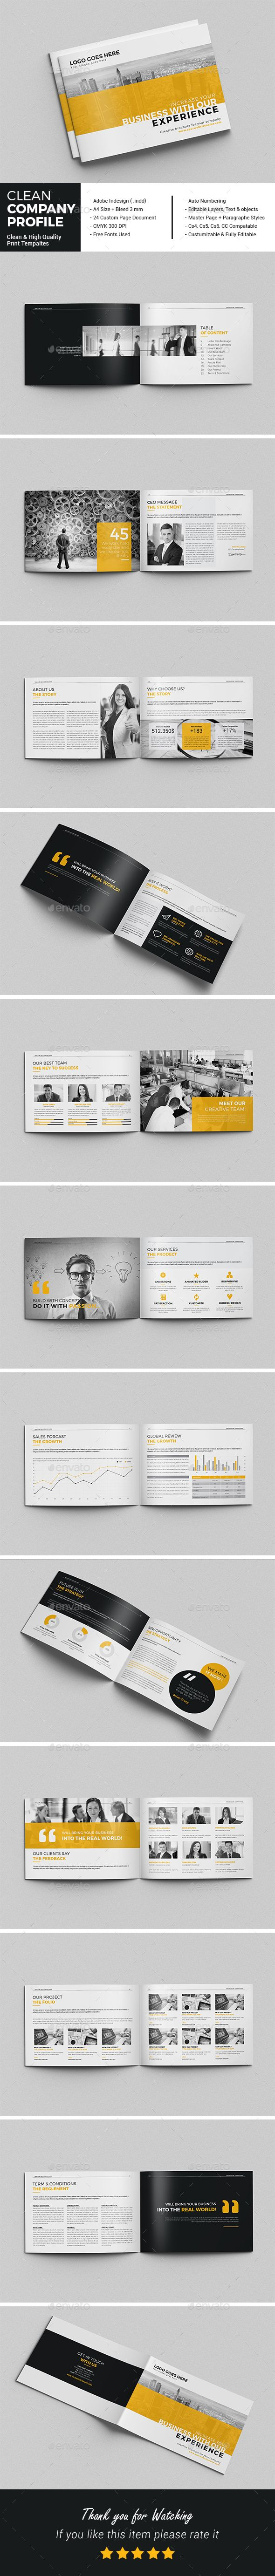 Clean Company Profile - Corporate Brochures Download here : https://graphicriver.net/item/clean-company-profile/19435870?s_rank=128&ref=Al-fatih